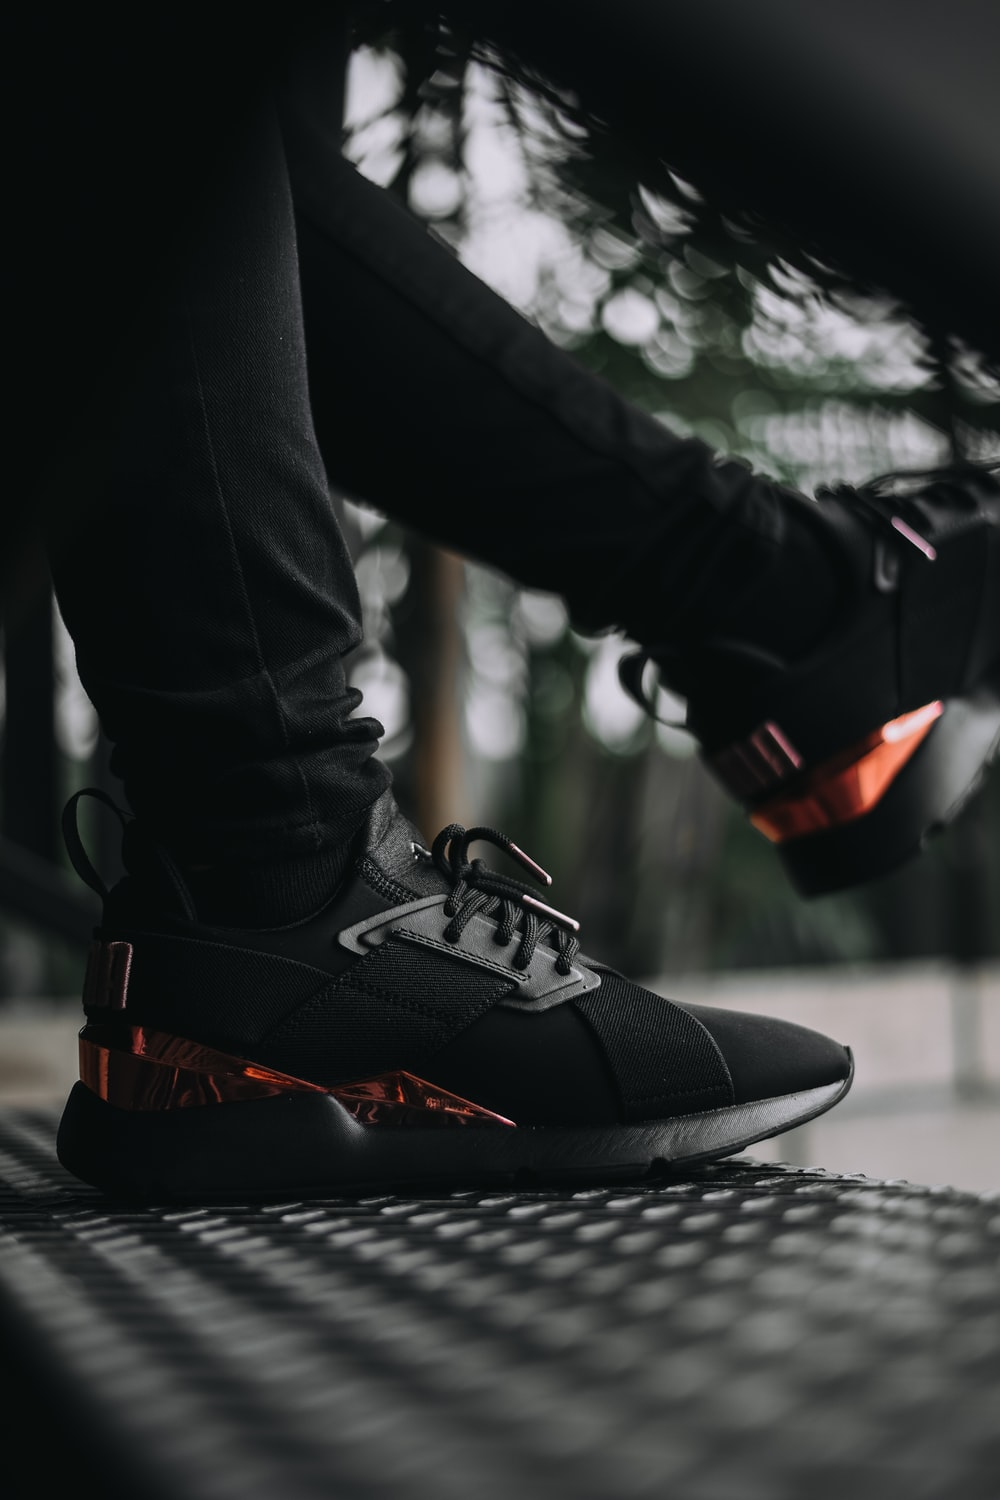 person in black pants and black and orange nike sneakers